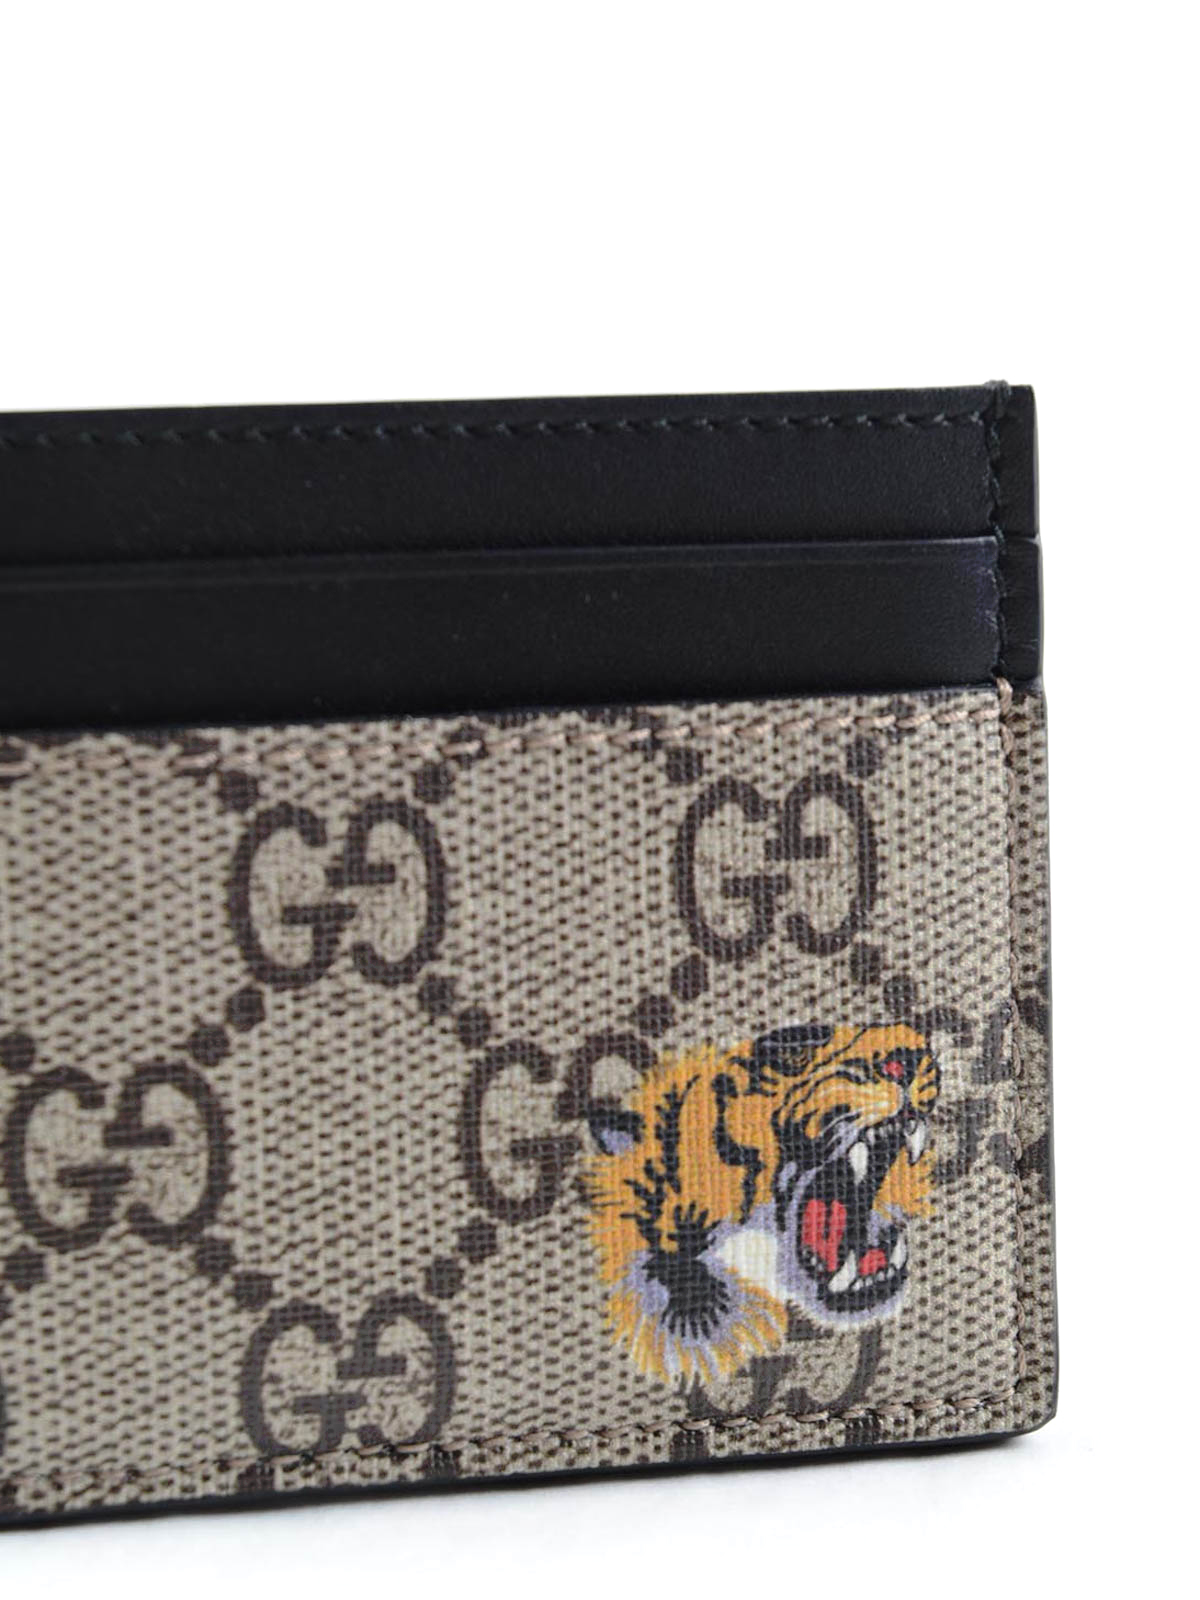 62e83c8817e249 Gucci - Tiger print GG Supreme card holder - wallets & purses ...